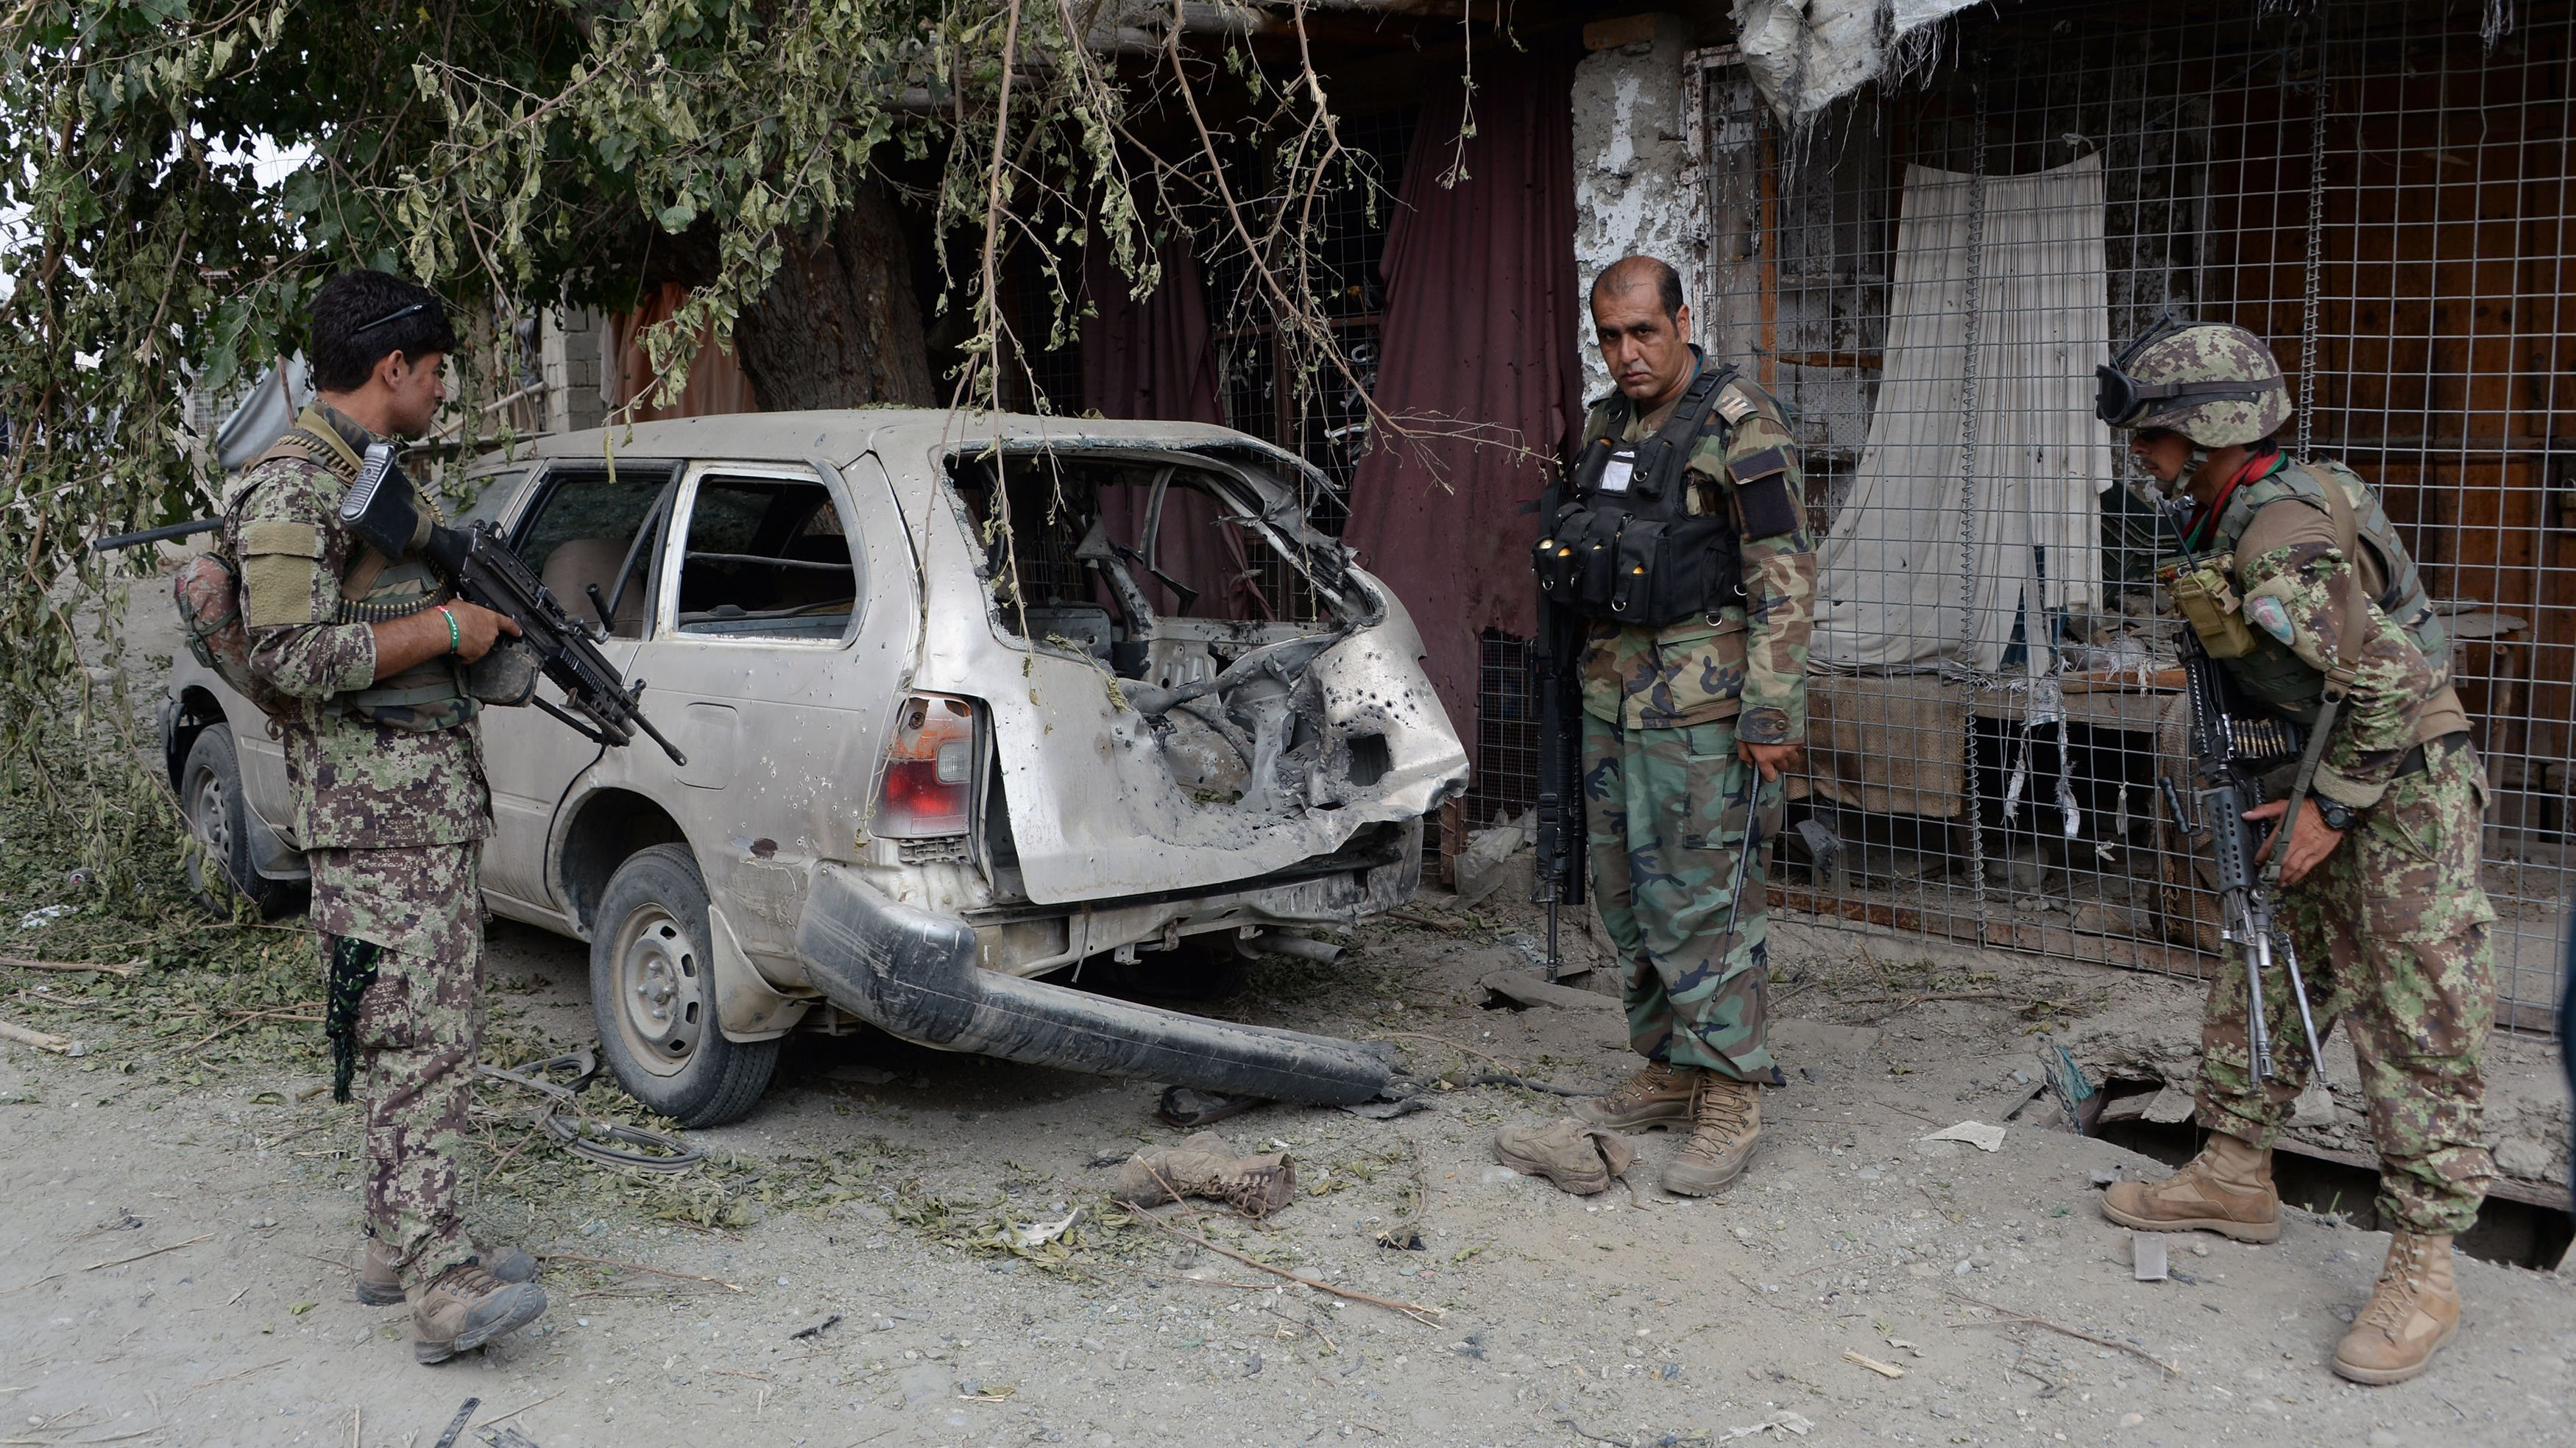 Afghan soldiers inspect a destroyed vehicle after an operation in Nangarhar province, Afghanistan, on July 26, the day the Pentagon says a drone strike killed the leader of the Islamic State in the region. Noorullah Shirzada/AFP/Getty Images